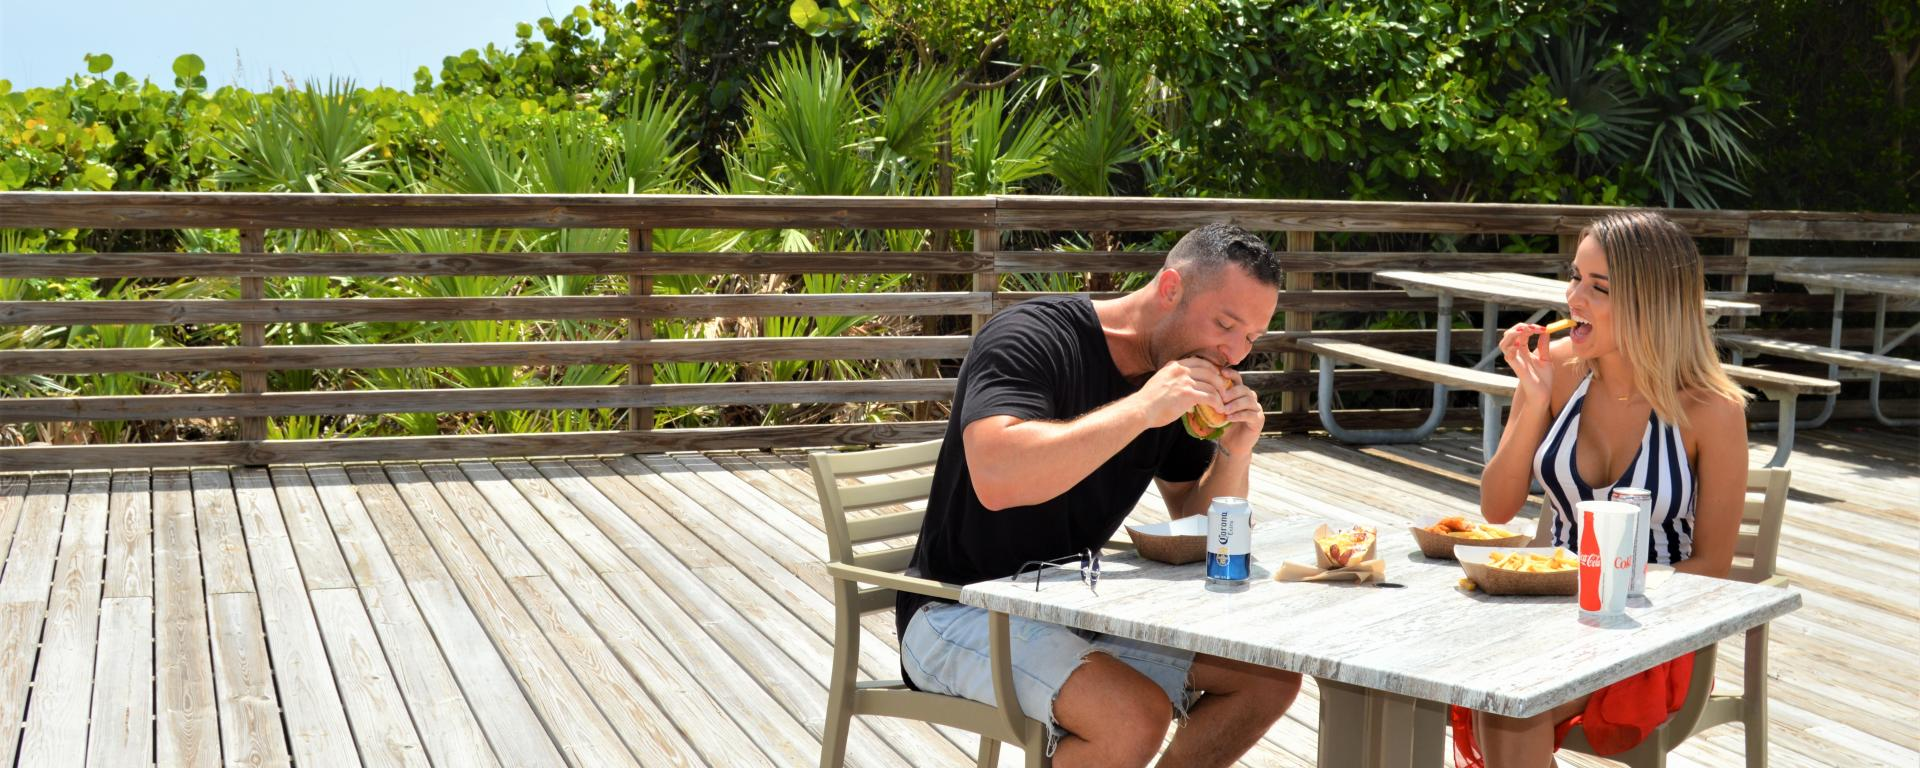 A couple enjoying food on the deck at Sand Dune Cafe.